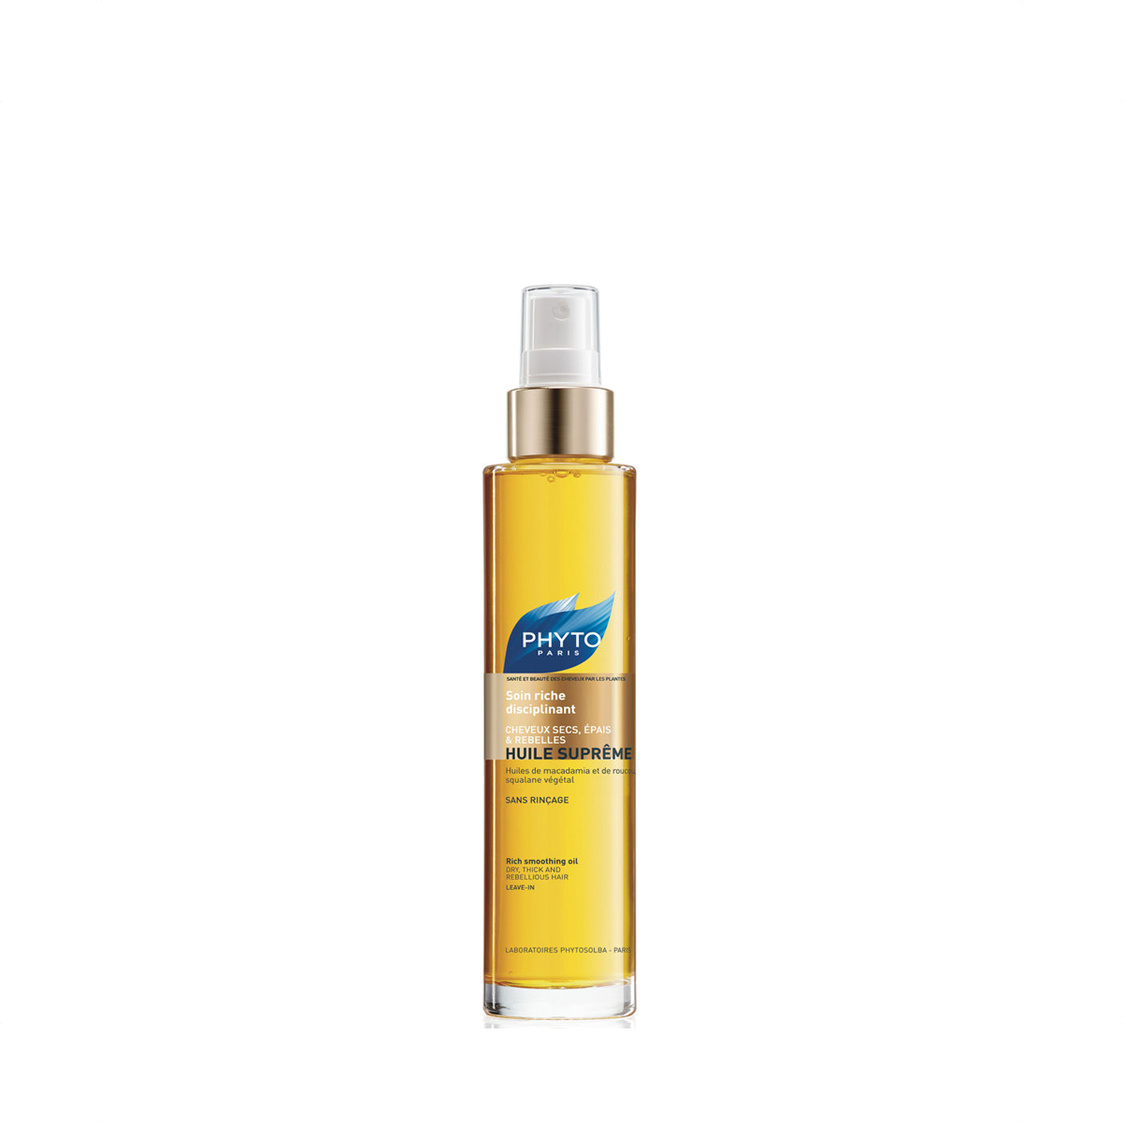 Huile Supreme Rich Smoothing Oil 100ml P249